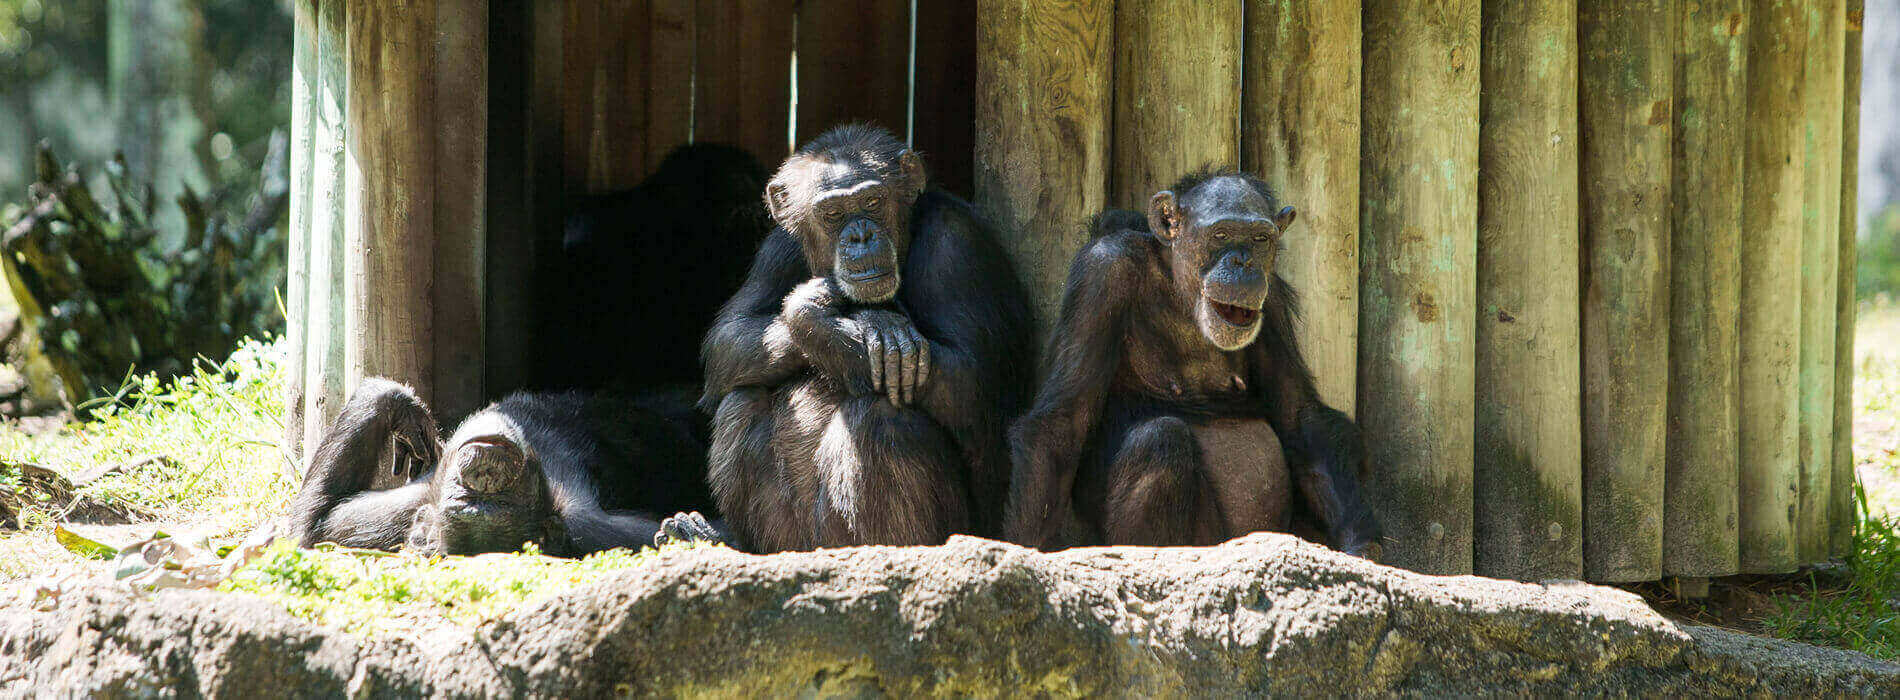 Chimpanzees at Busch Gardens Tampa Bay